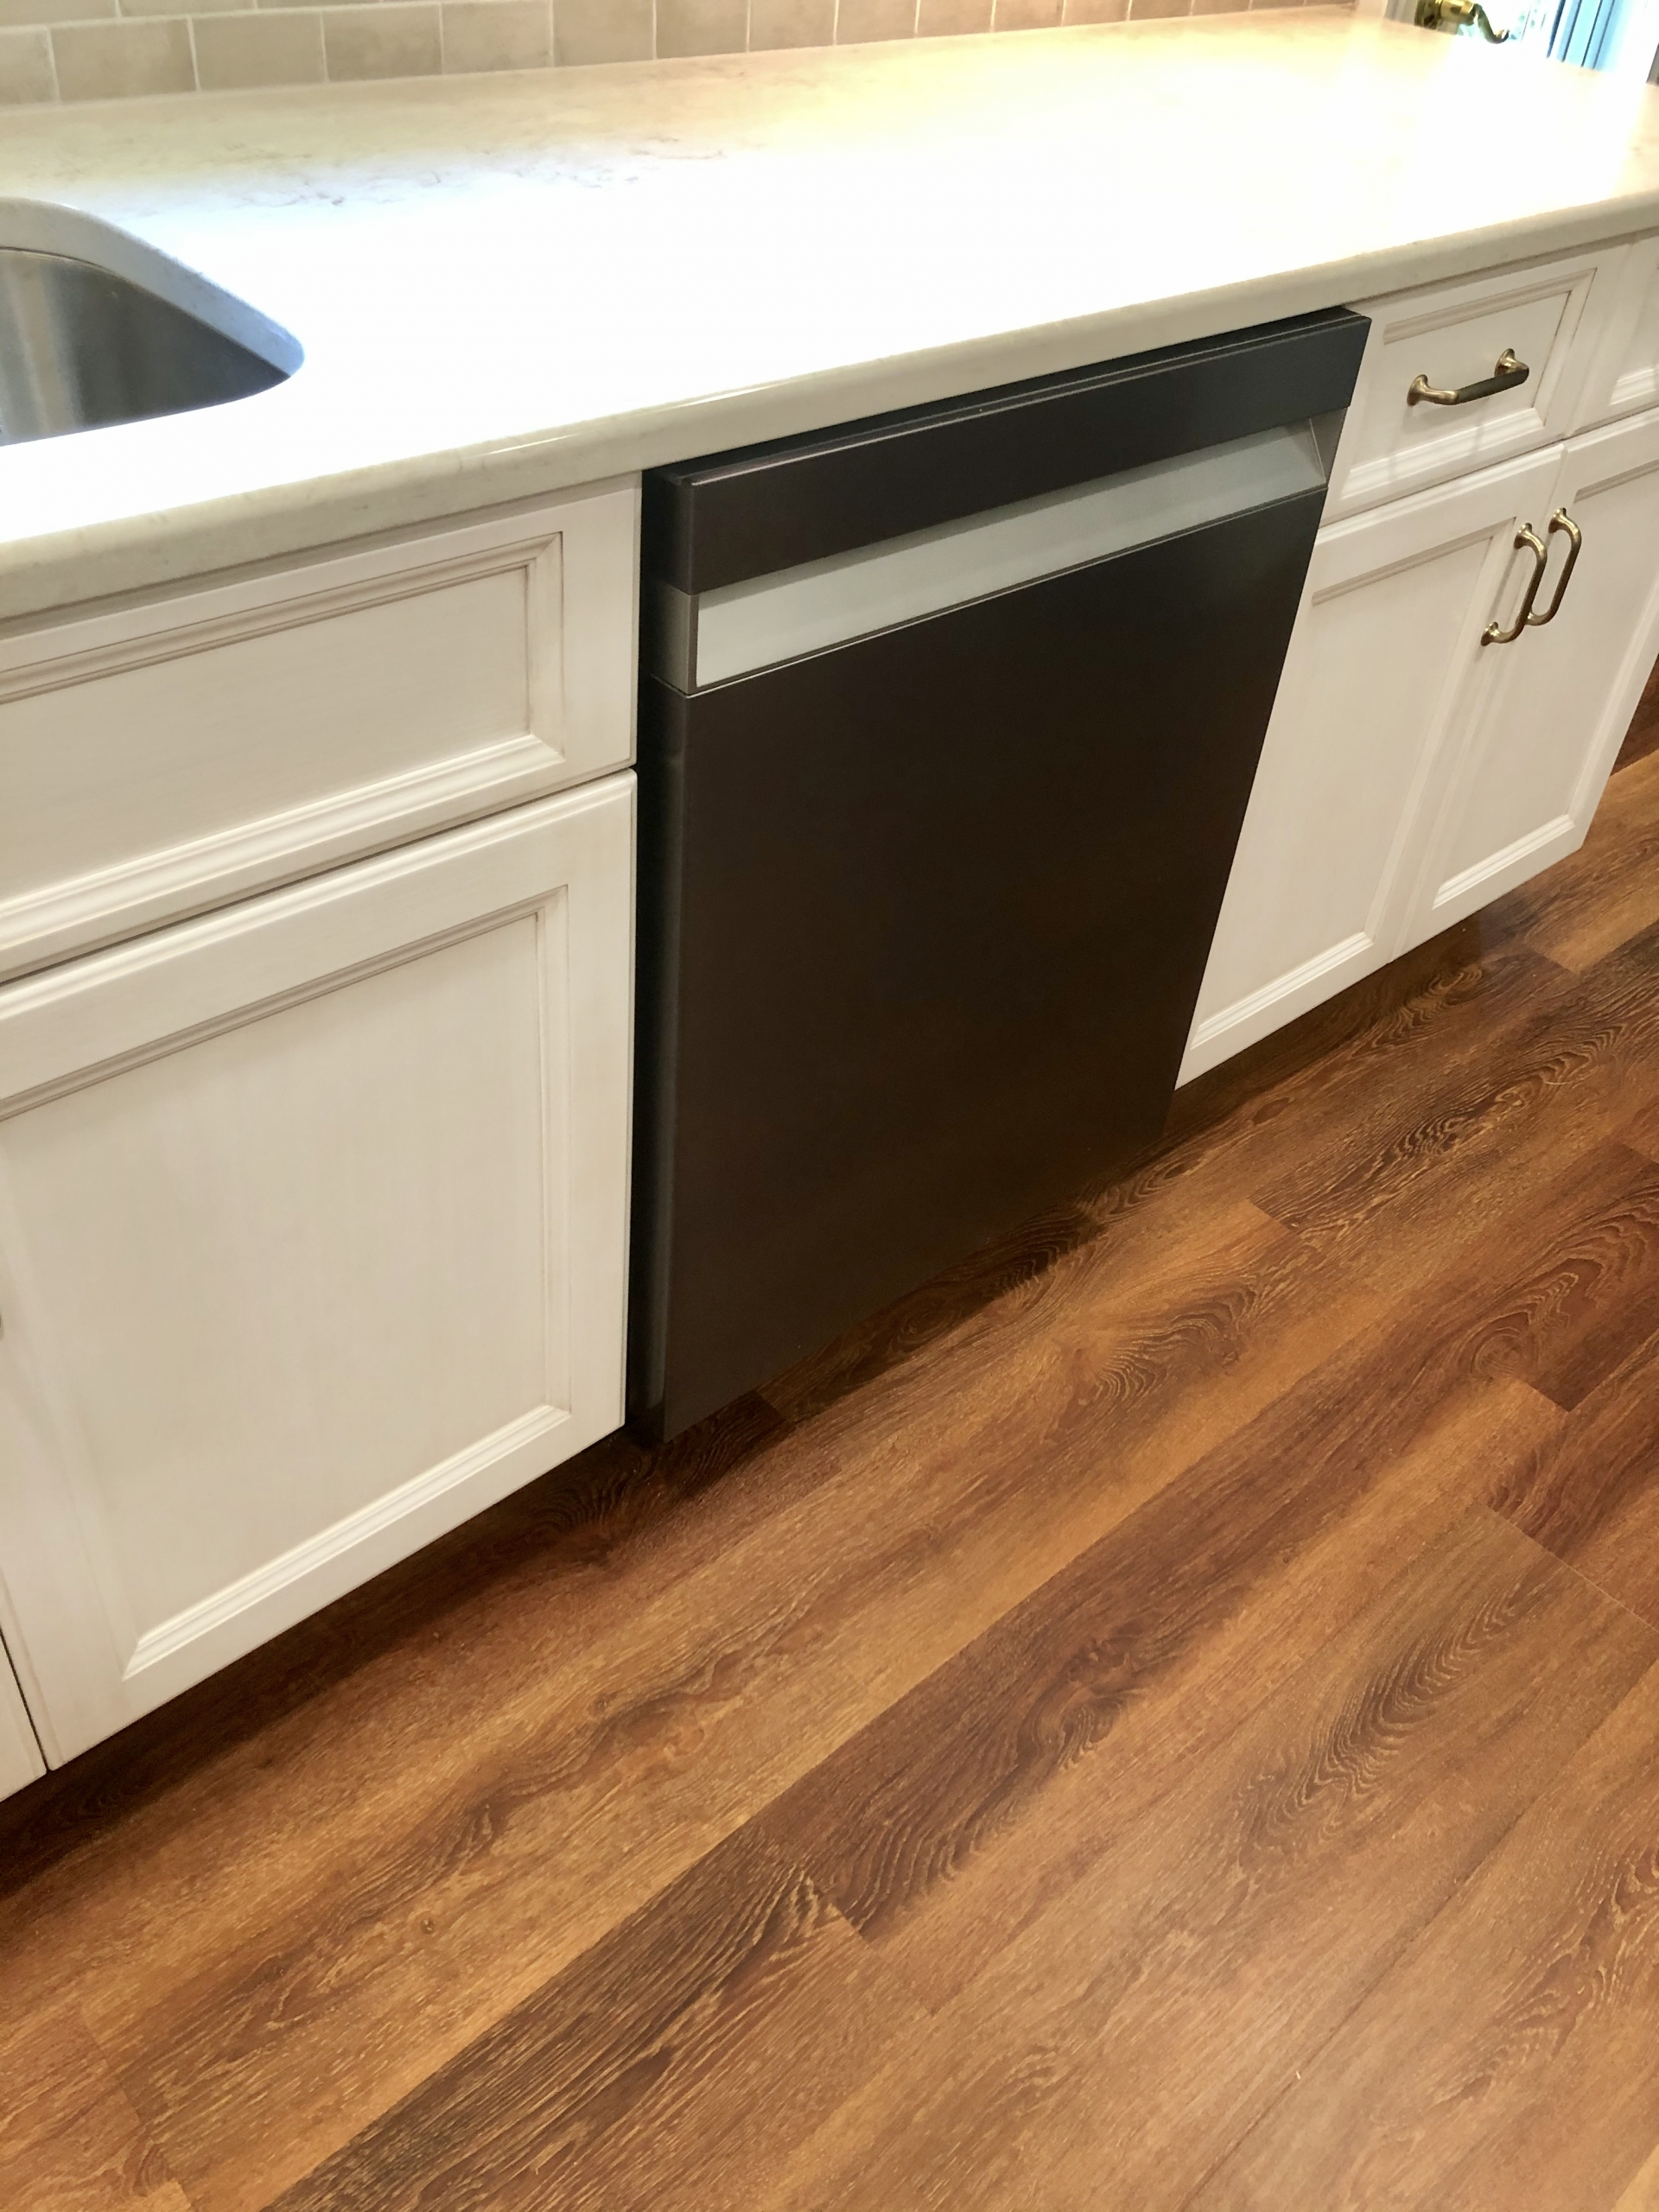 Remodeled Kitchen Countertop and Dishwasher